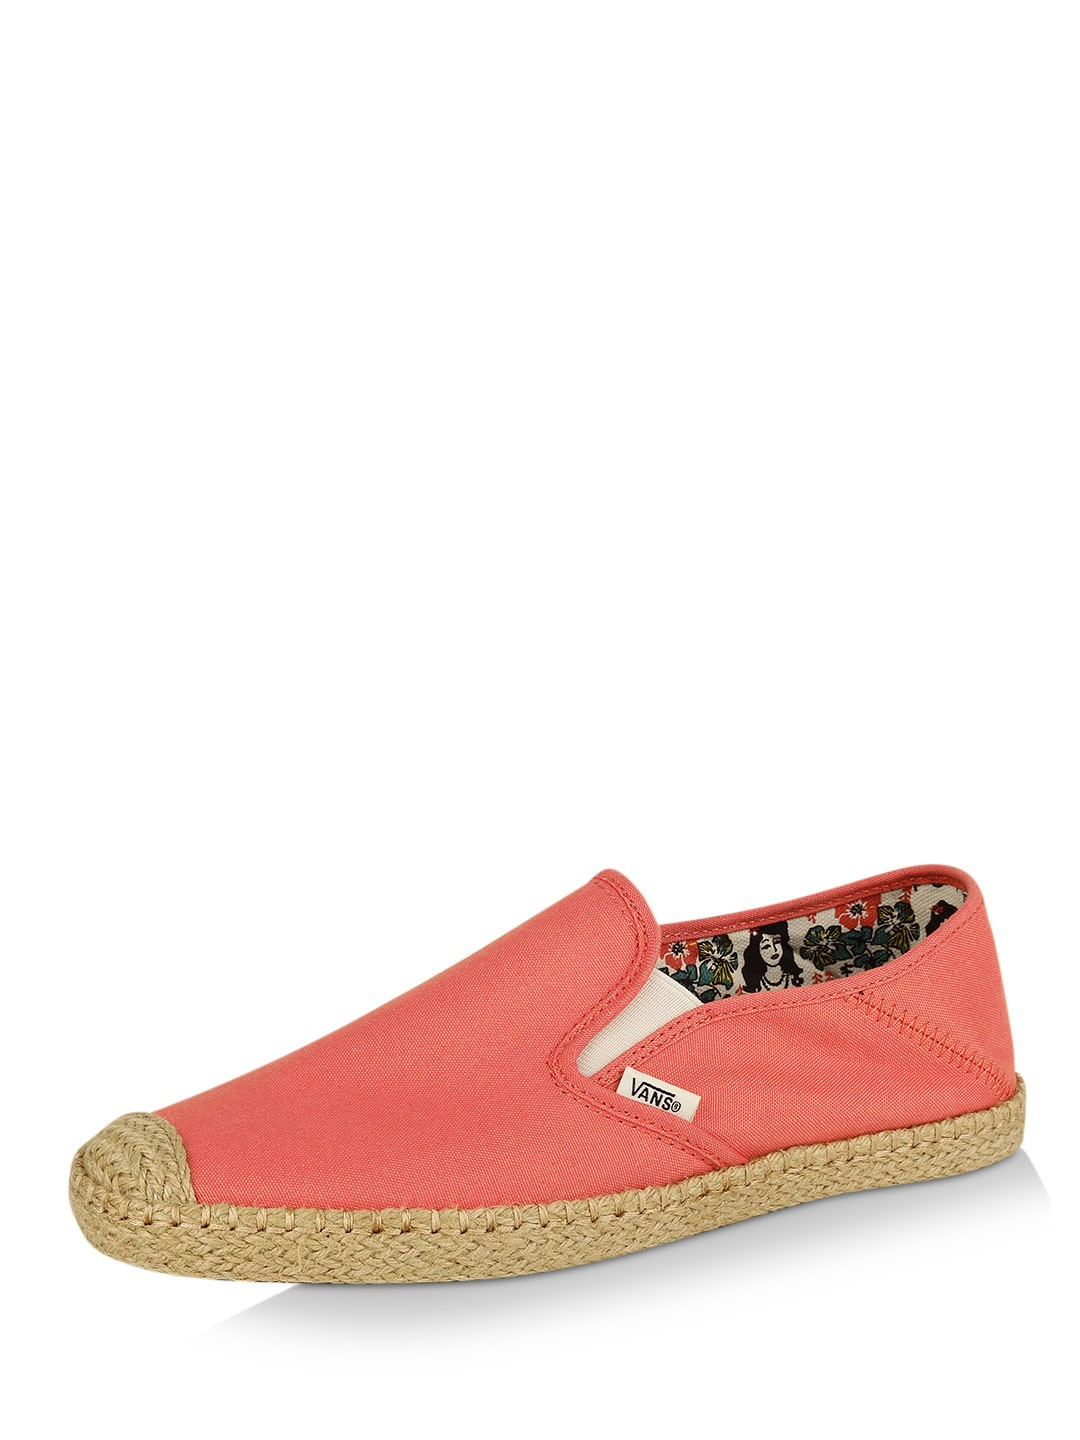 buy vans slip on shoes for s pink flat shoes